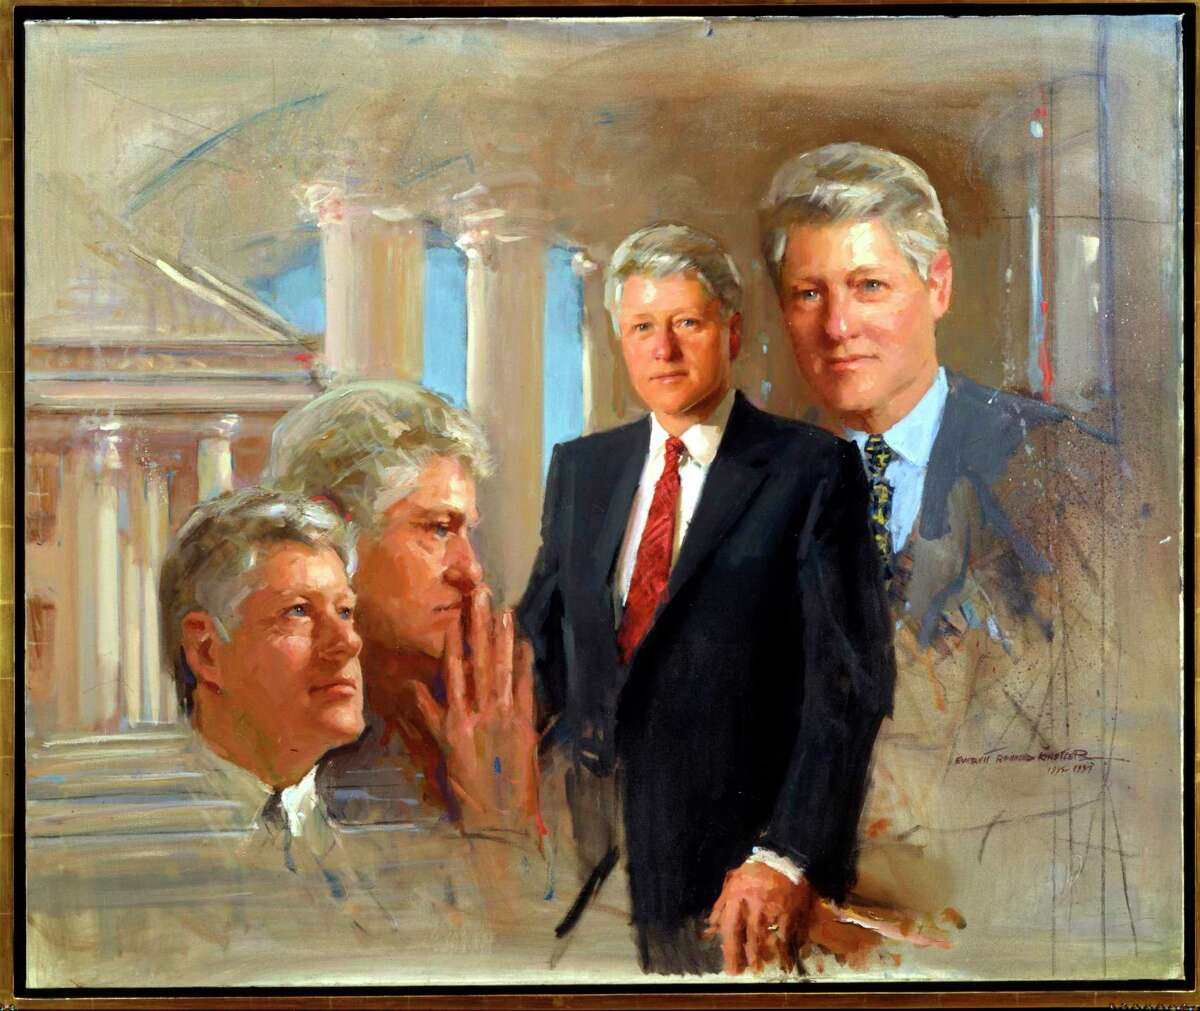 """""""Portrait Study of President William Jefferson Clinton, 1995-97,"""" oil on canvas, by portrait artist Everett Raymond Kinstler. Kinstler died May 26, 2019, in Bridgeport and one of his last known contributions was writing the forward to James Philip Head's 2019 book """"An Affair with Beauty - The Mystique of Howard Chandler Christy: Romantic Illusions."""""""